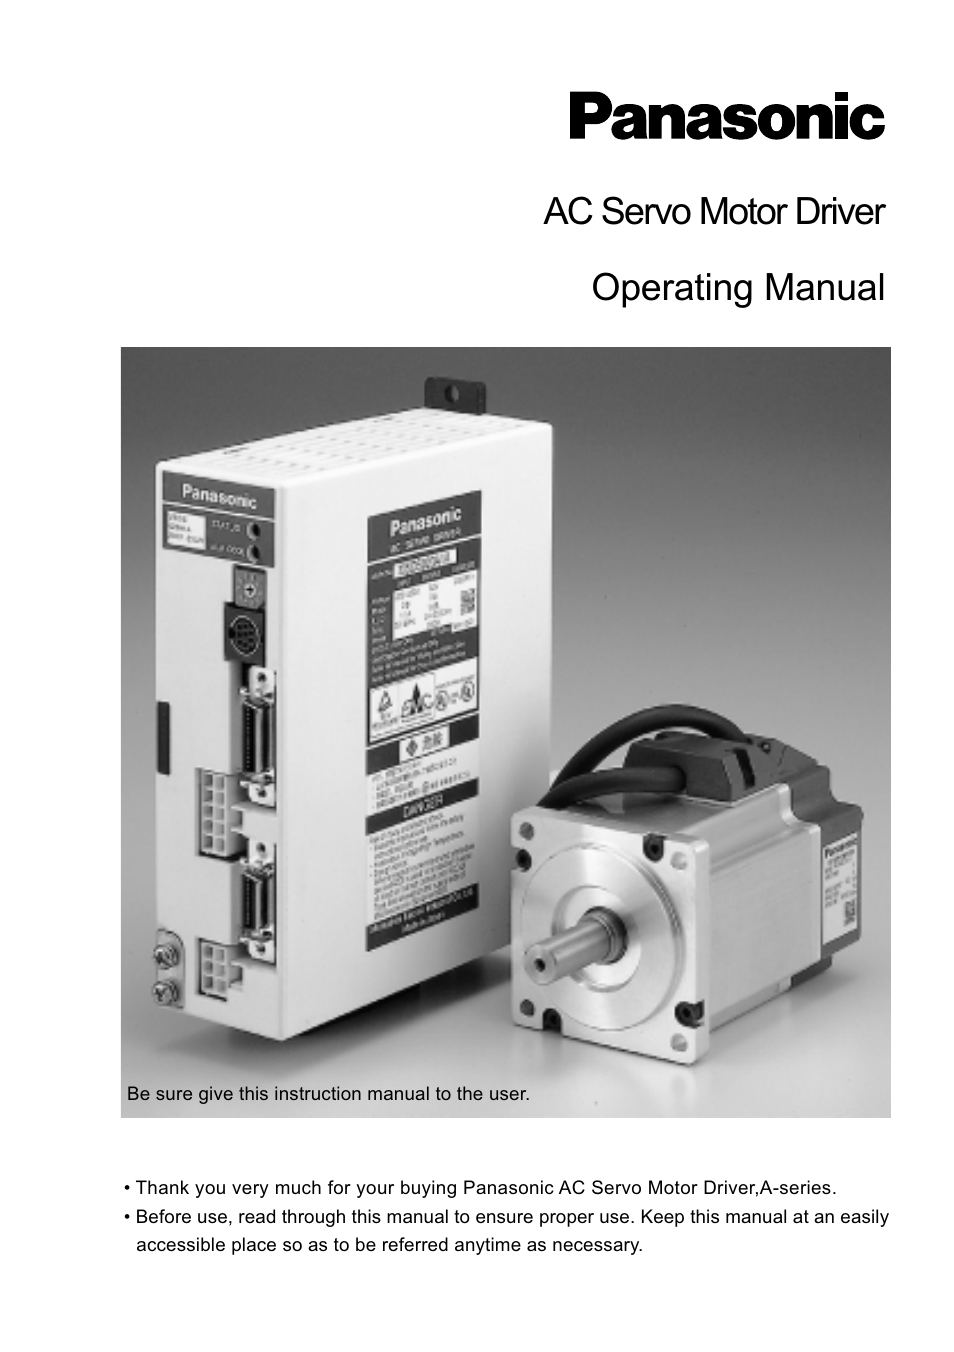 Panasonic MDDDT5540 User Manual | 133 pages | Also for